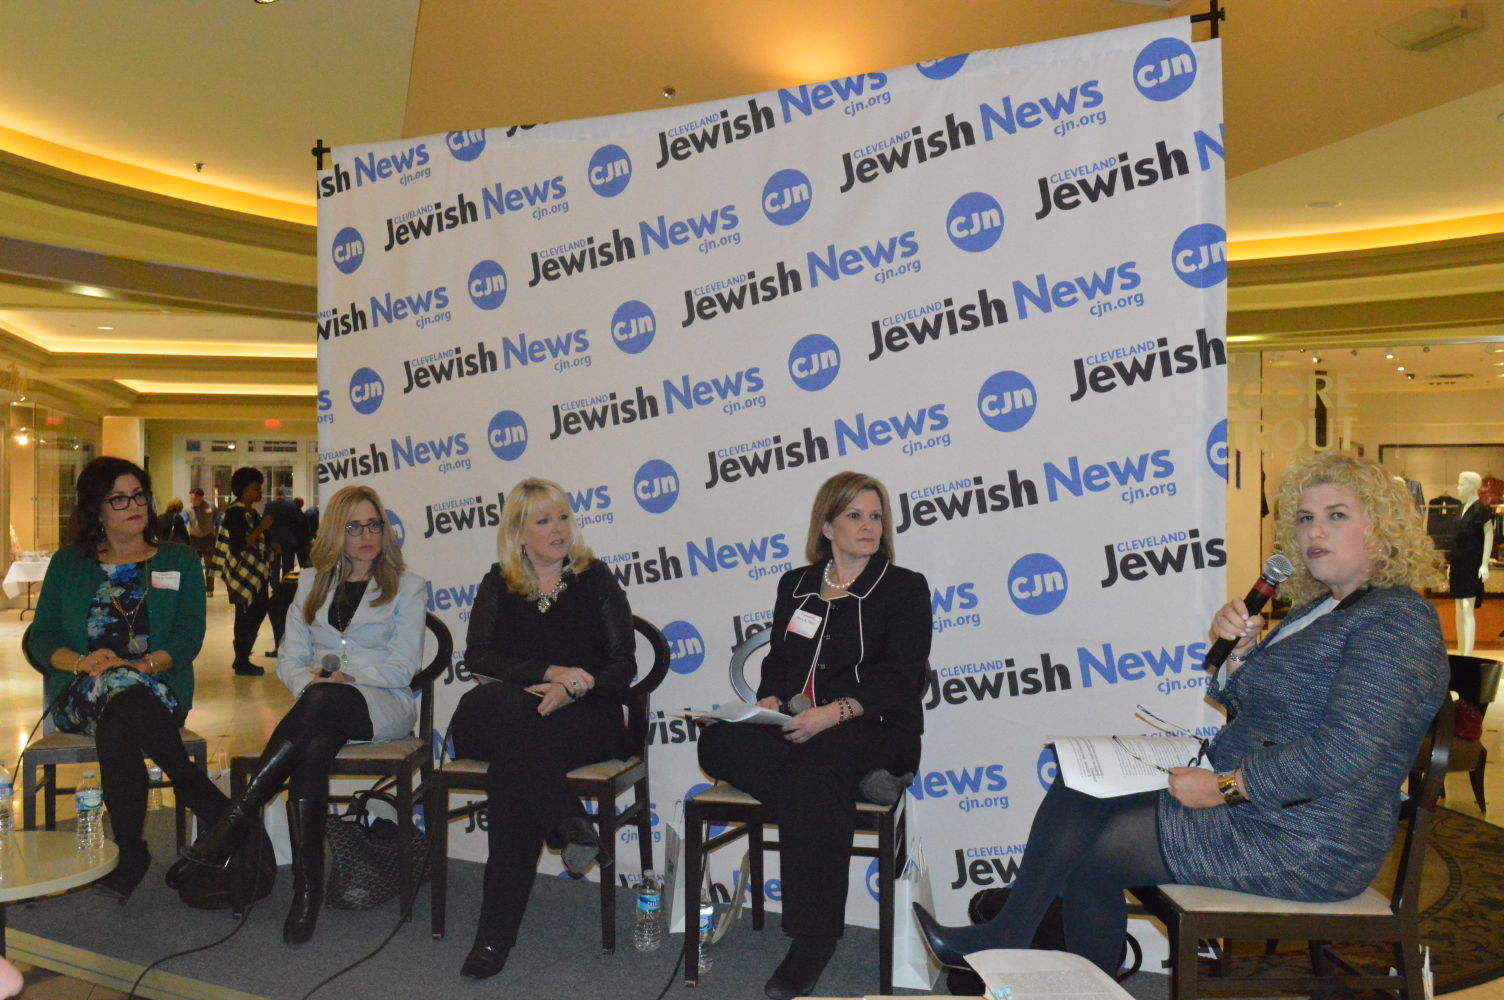 Bravo Cucina Italiana Eton Chagrin Boulevard Women In Leadership Presented By Cleveland Jewish News Covers